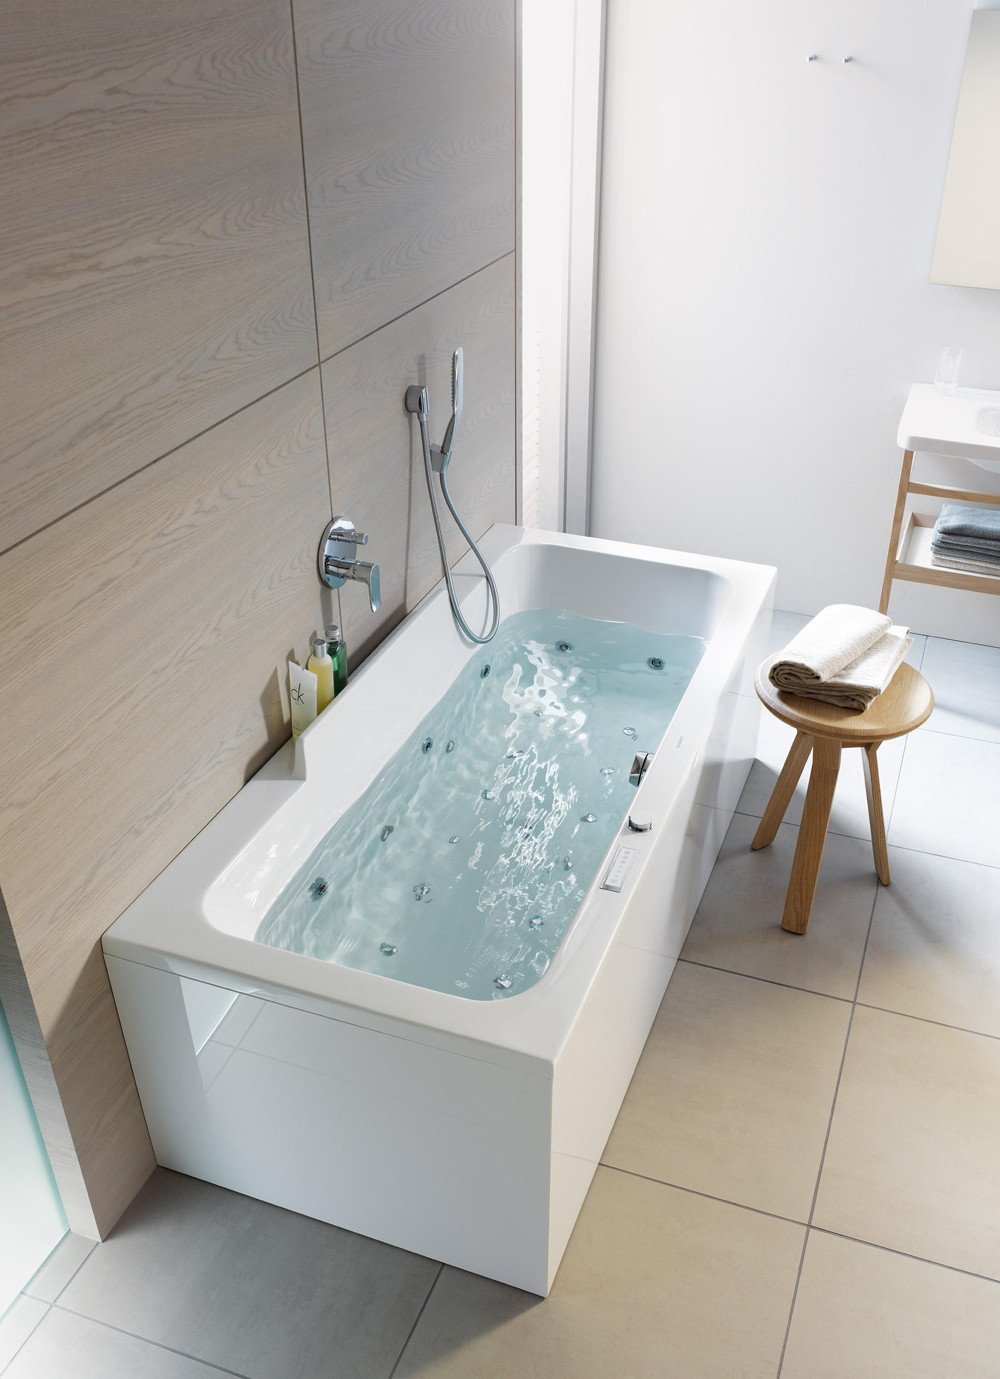 duravit durastyle hydromasaż, wanna hydromasaż duravit durastyle, wanna do łazienki spa